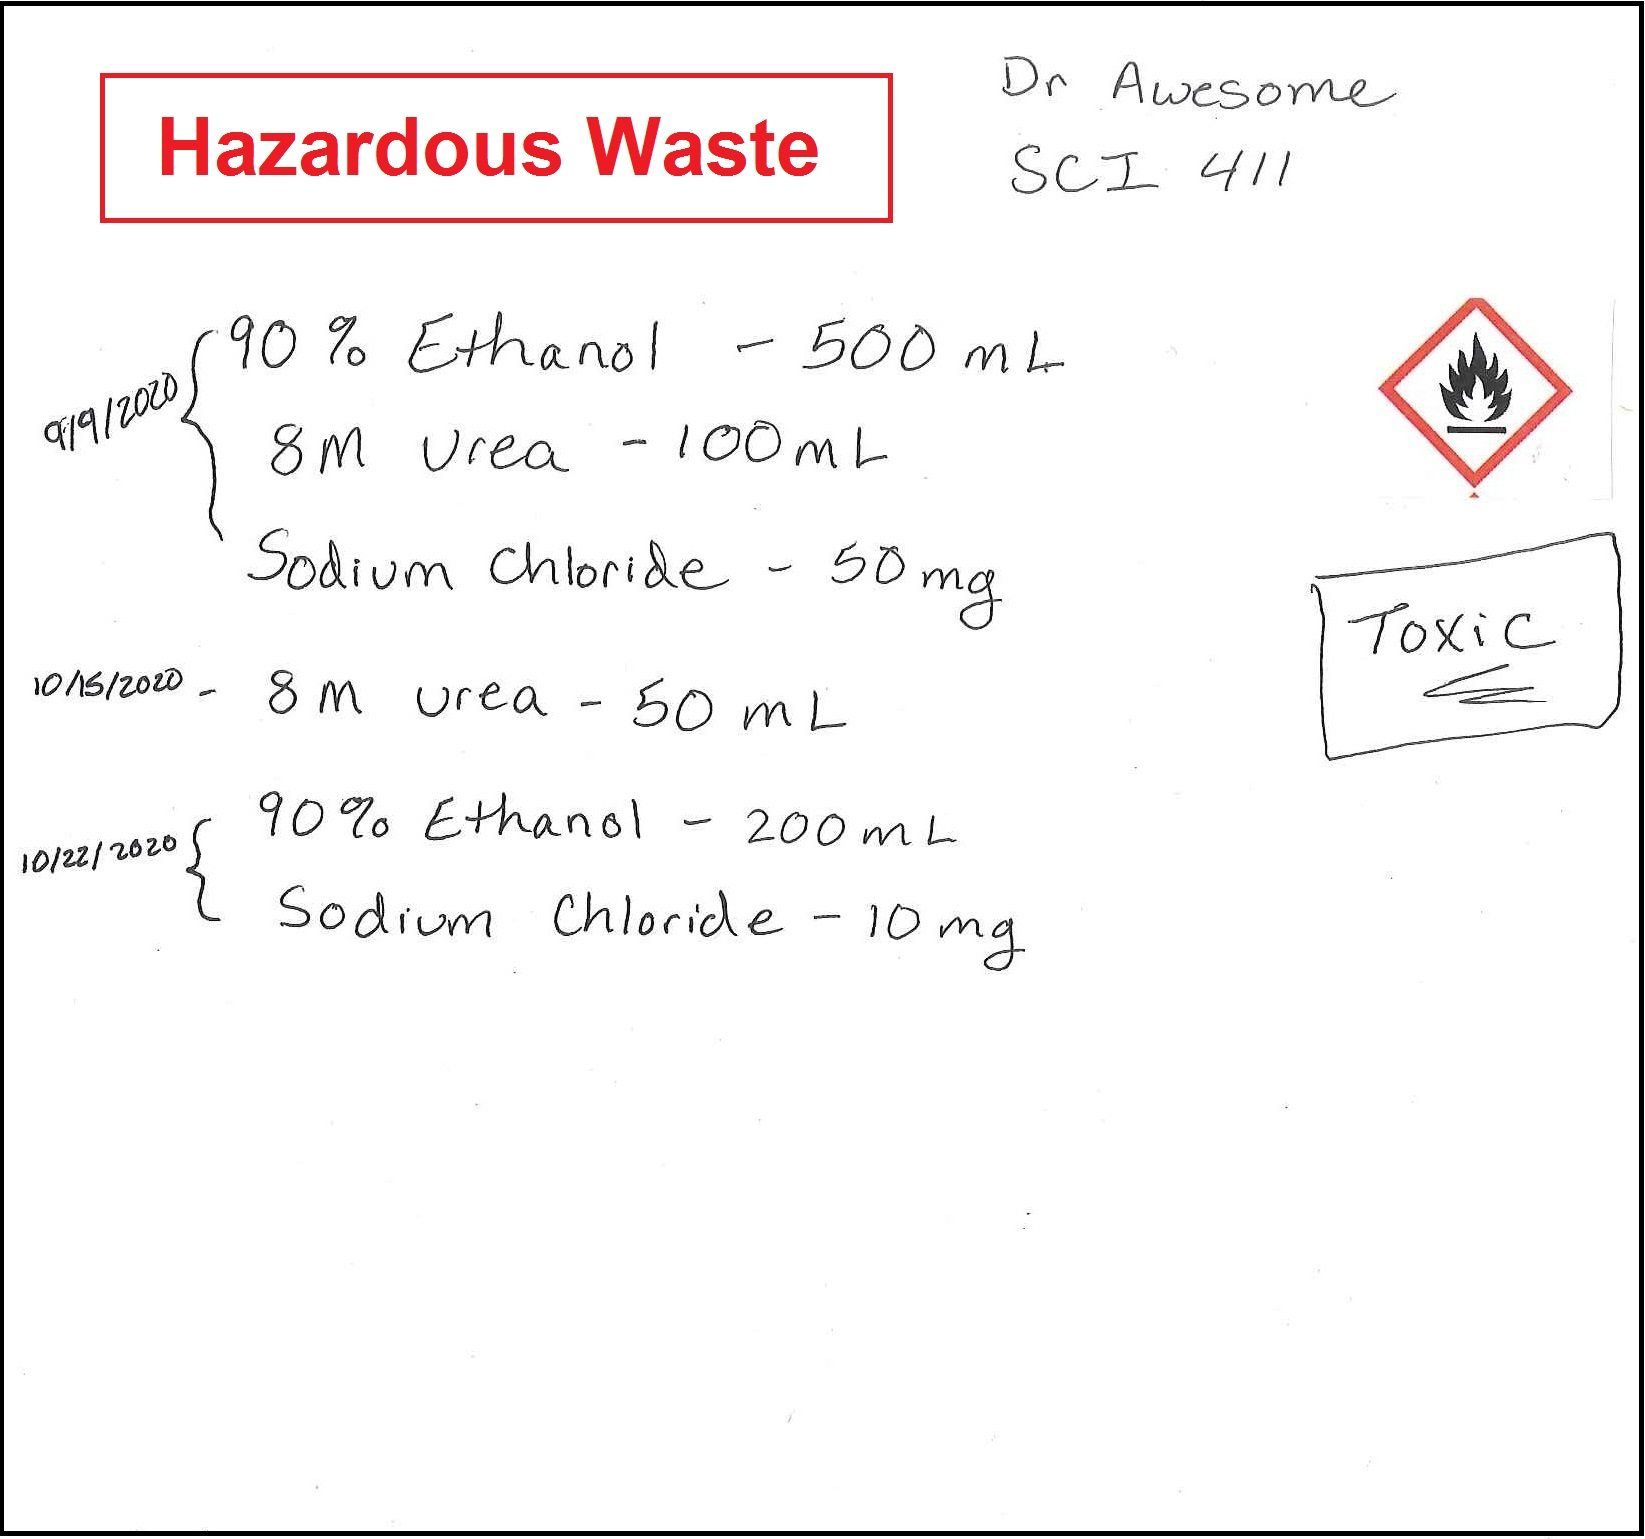 Example waste label for a container that is still being filled.